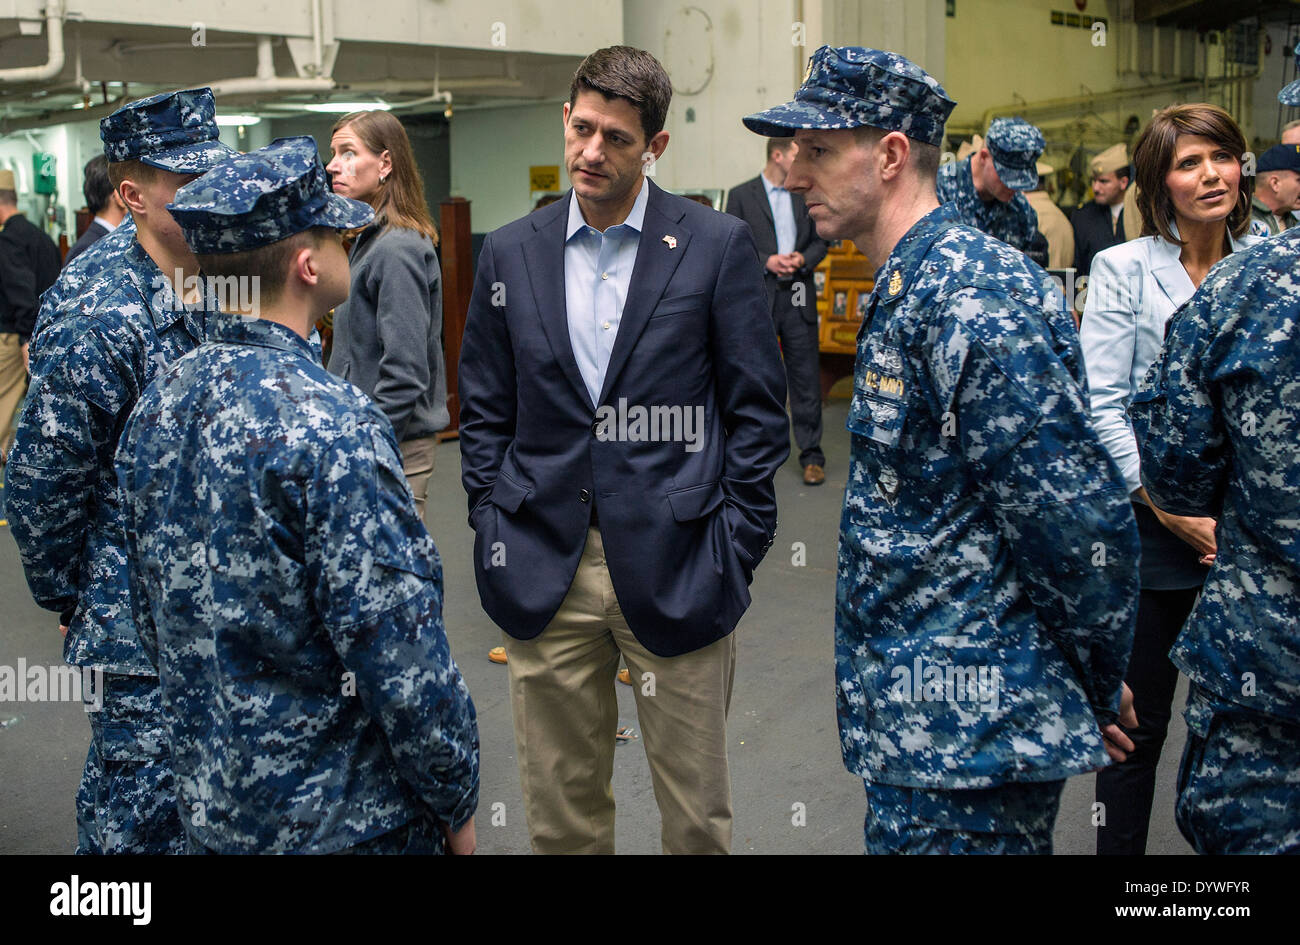 US Rep. Paul Ryan, center, speaks to Sailors in the hangar bay of the nuclear aircraft carrier USS George Washington - Stock Image